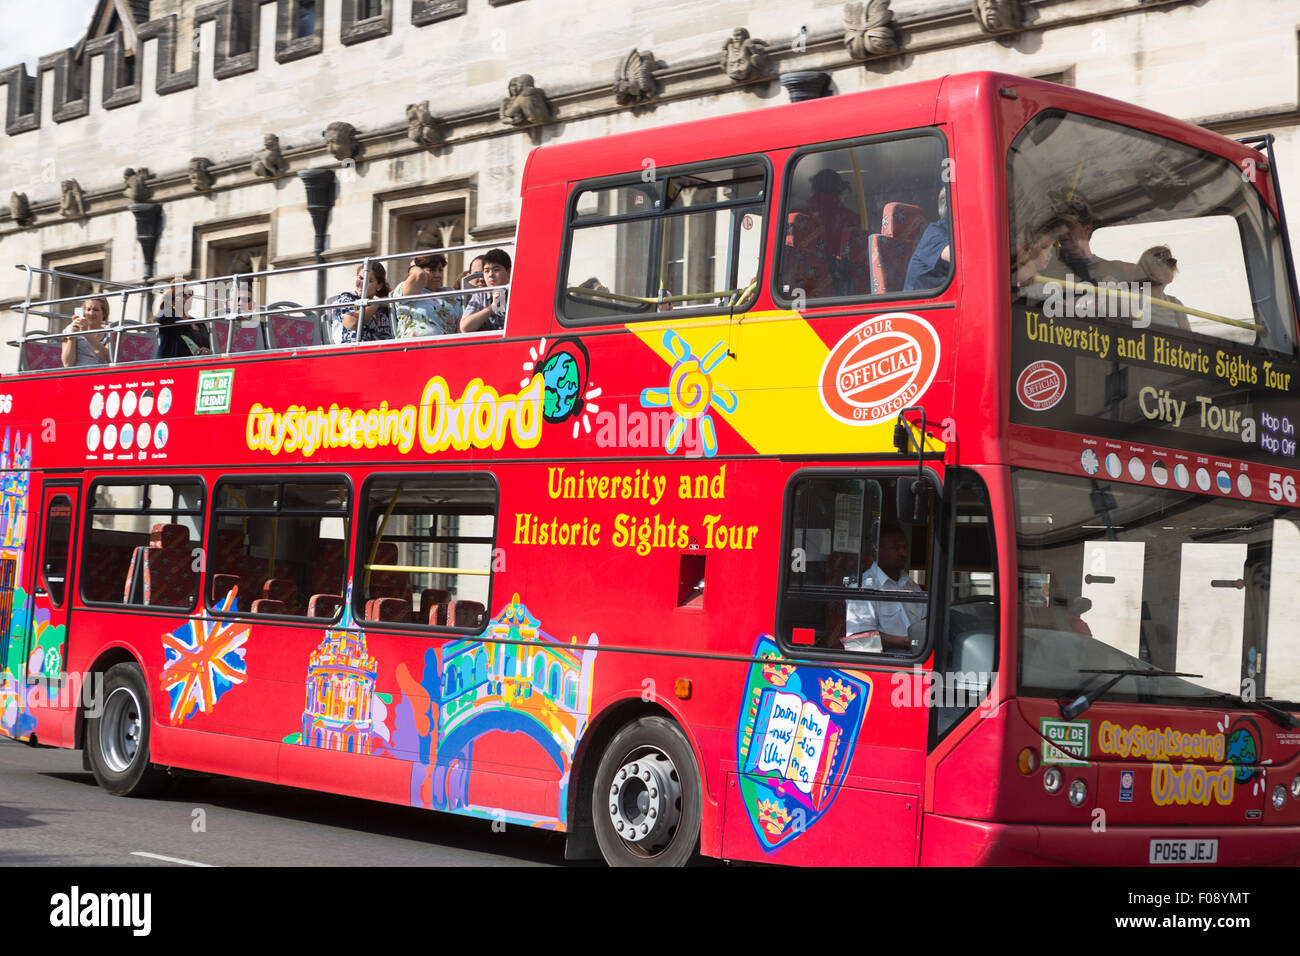 UK, Oxford, tourist siteseeing bus. - Stock Image